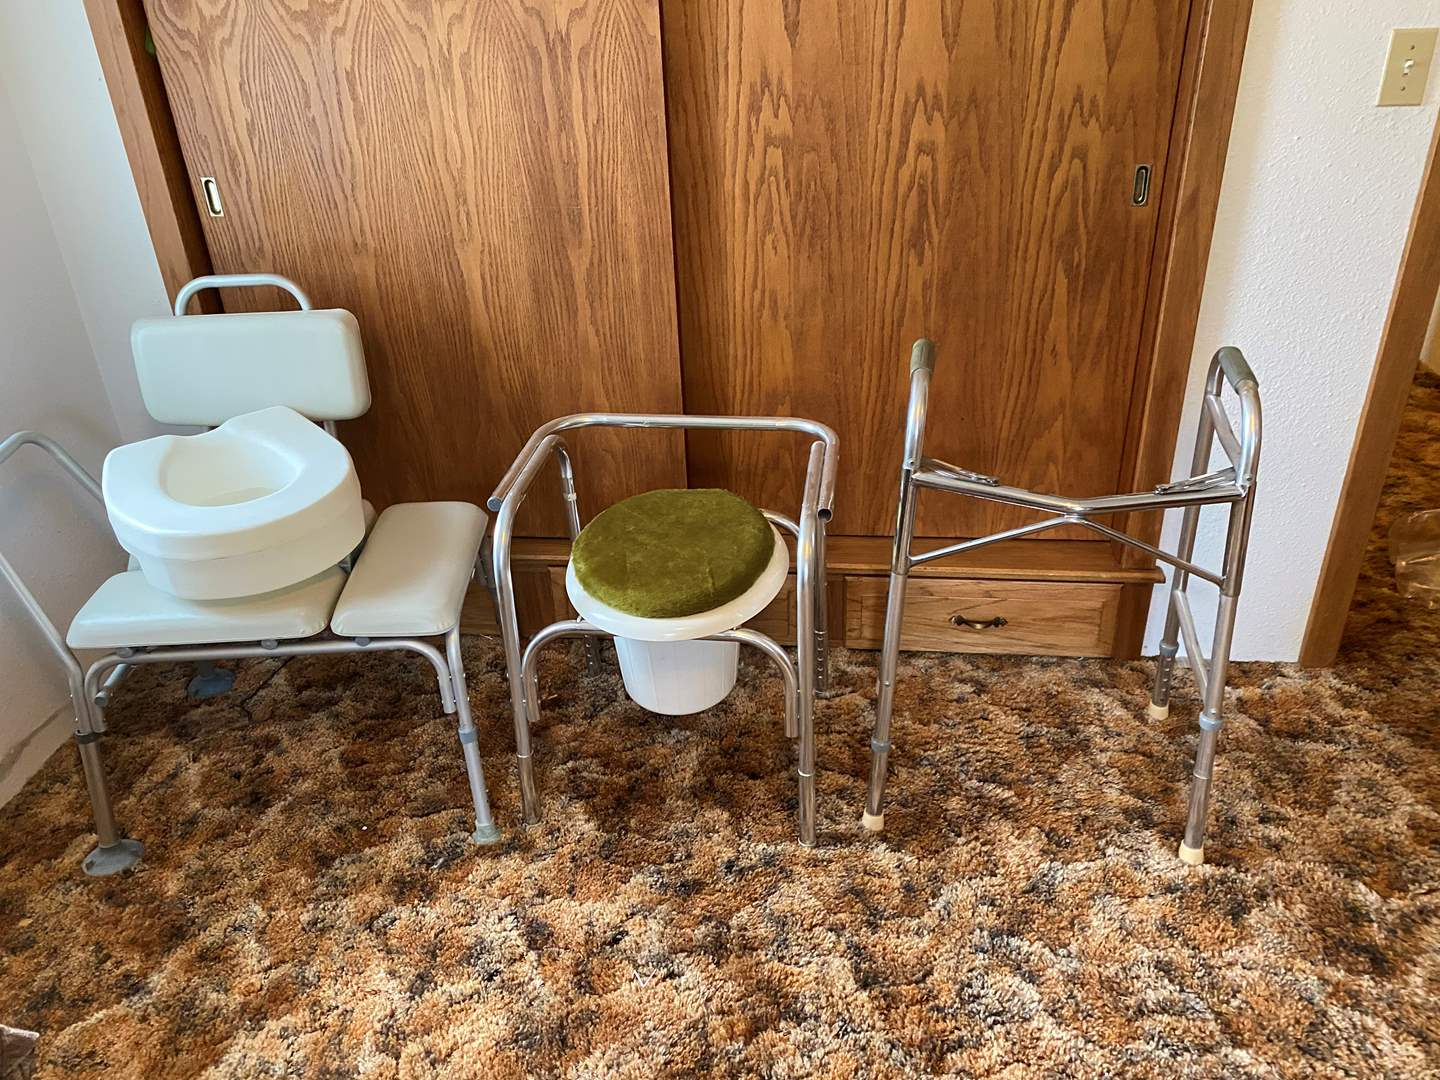 Lot # 210 - Shower Chair, Walker & Toilet Chairs (main image)